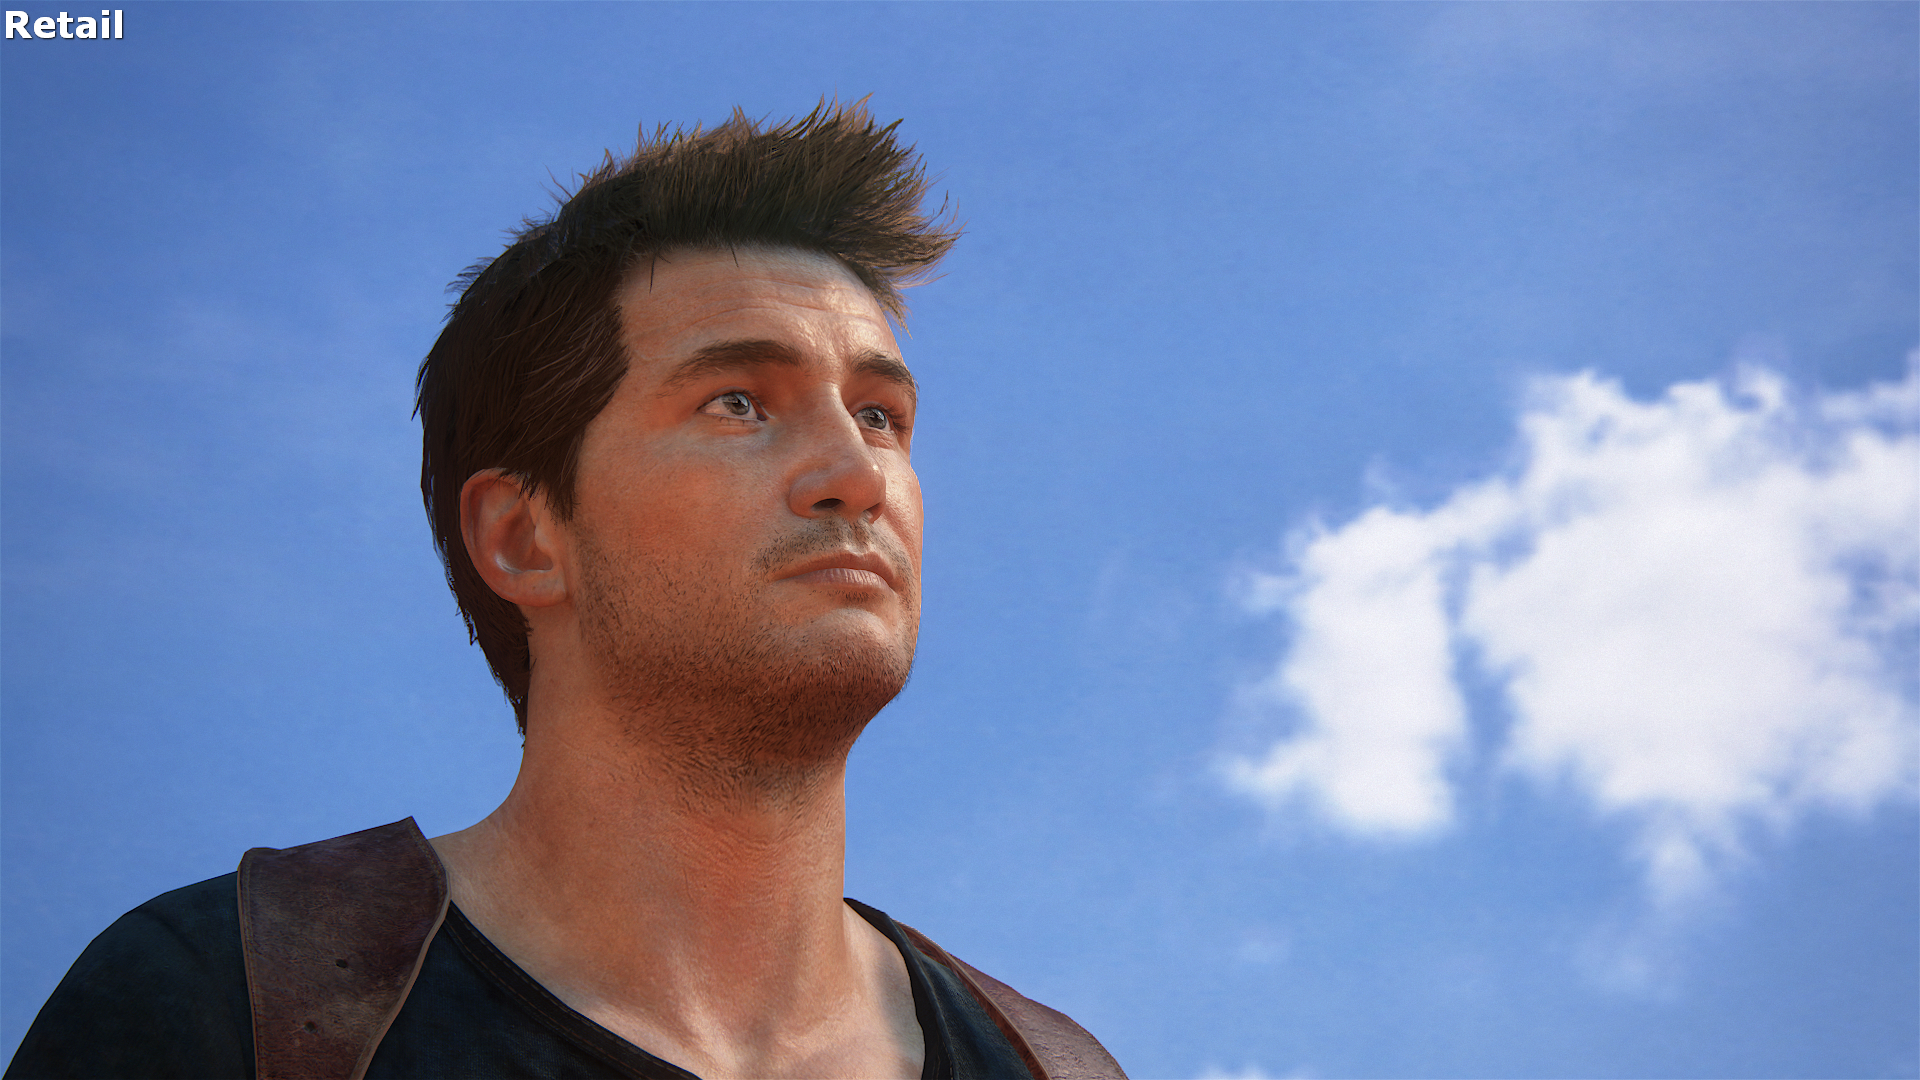 uncharted-4-screens-leaked-3